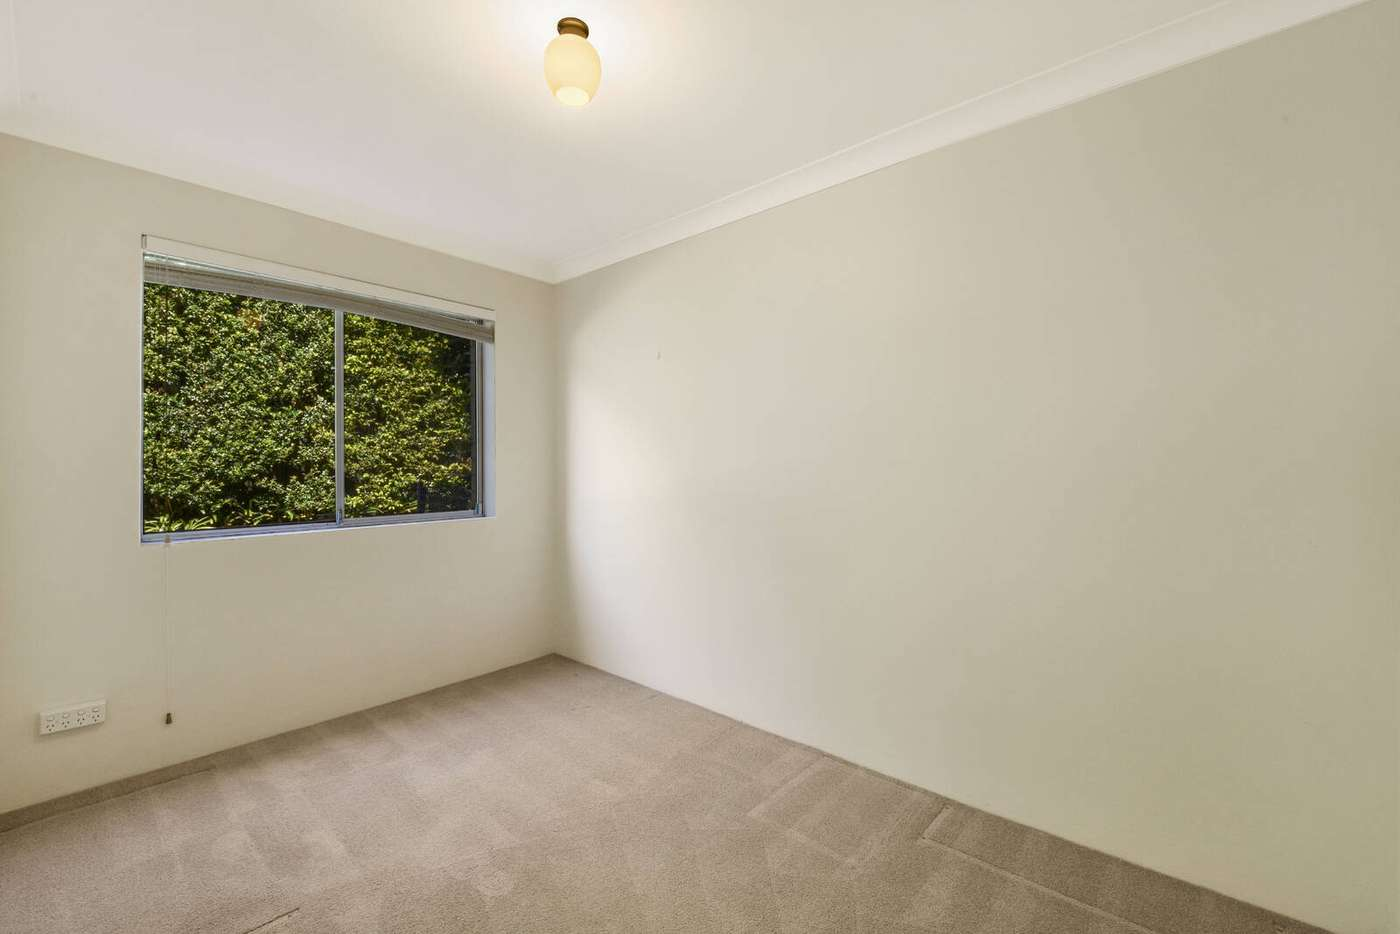 Sixth view of Homely apartment listing, 1/55 Albert Street, Hornsby NSW 2077